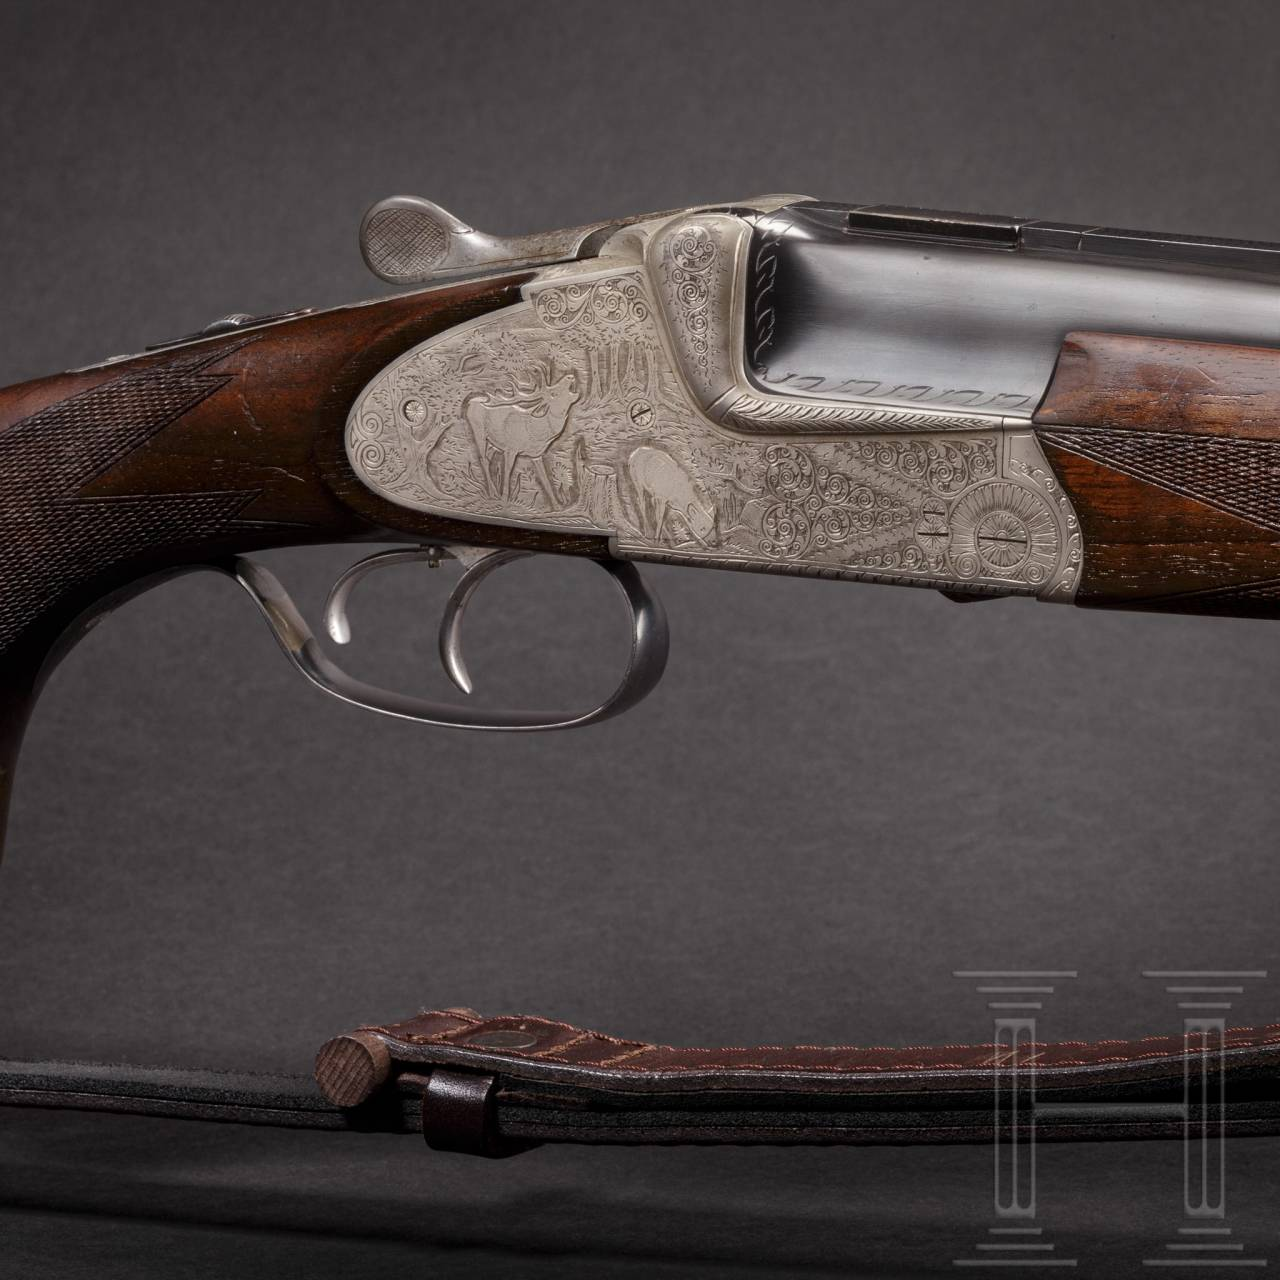 An over and under Scheiring-Düsel combination rifle with insert barrel and Schmidt & Bender scope